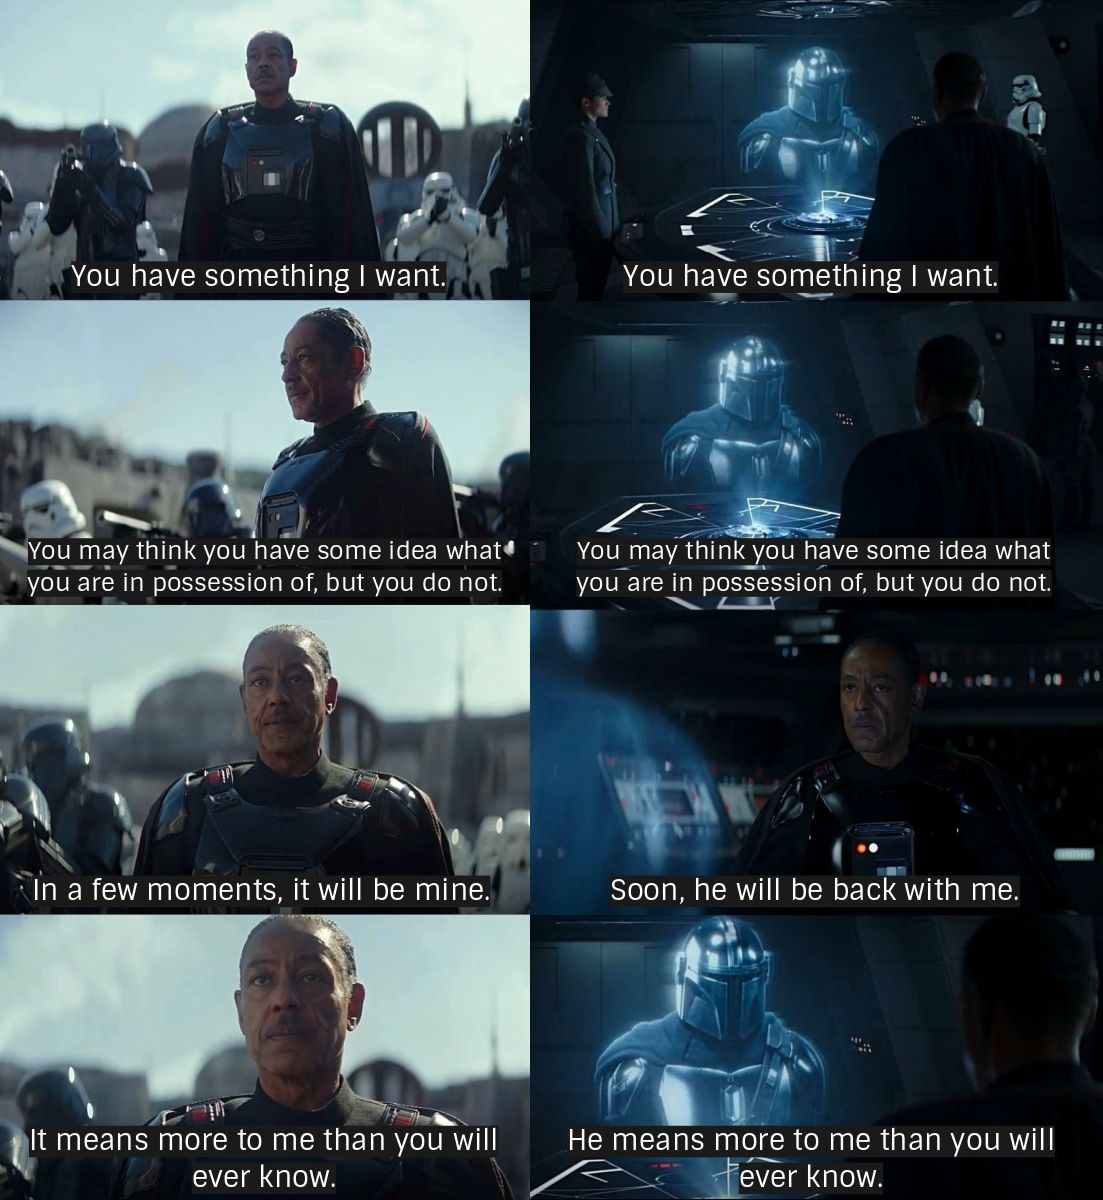 Mando And Moff Gideon Parallel The Mandalorian Star Wars Images Star Wars Facts Star Wars Humor